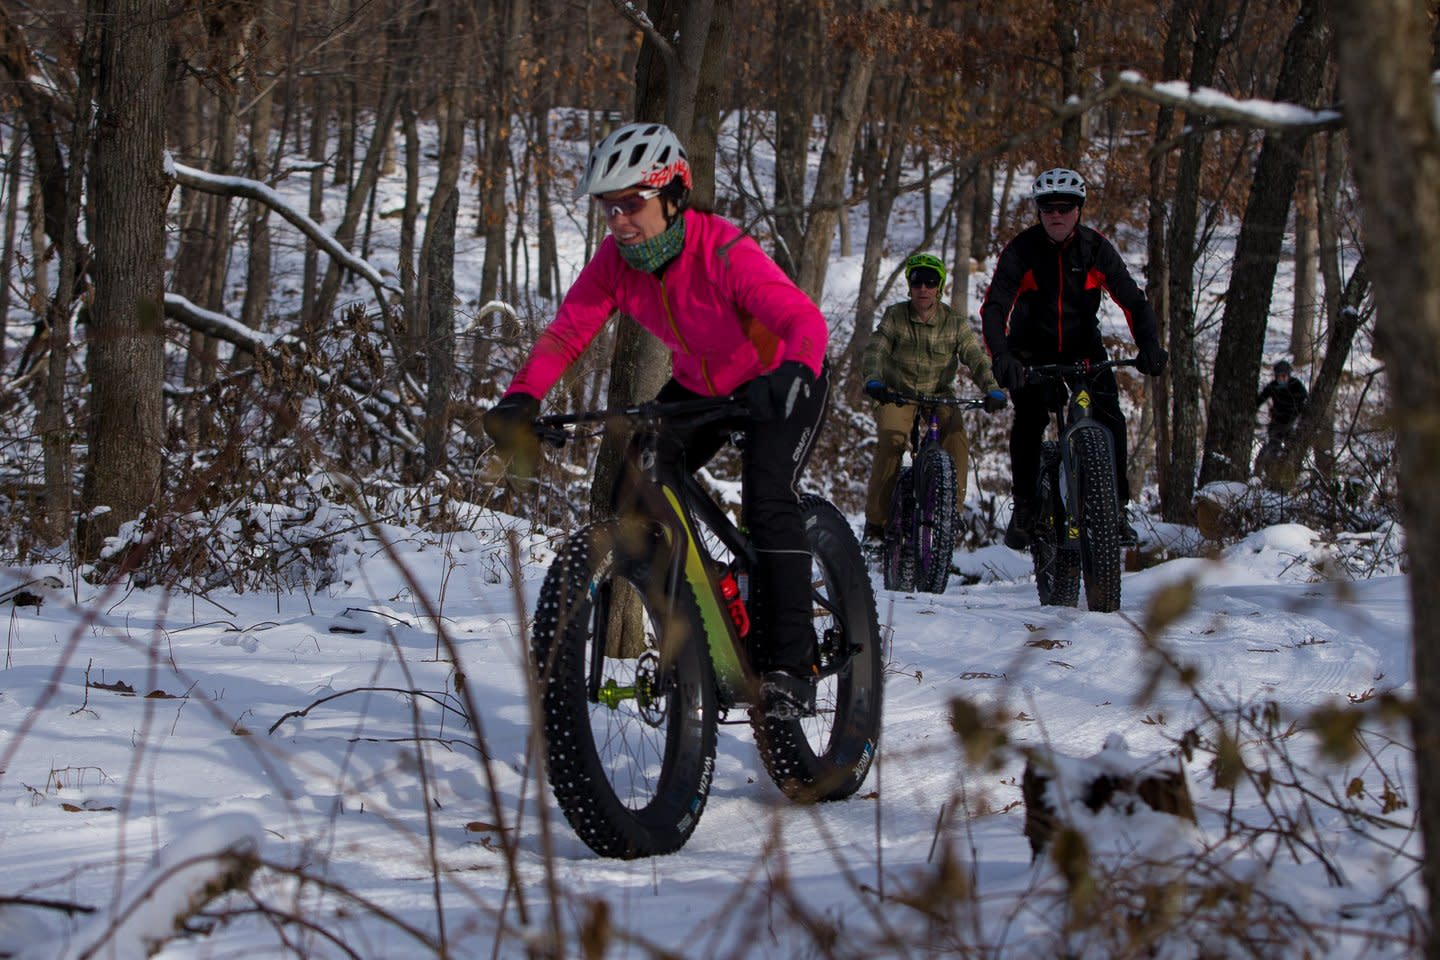 Fat Tire Biking at Standing Rocks County Park in the Stevens Point Area. Photo by Lex Bernsteen Photography